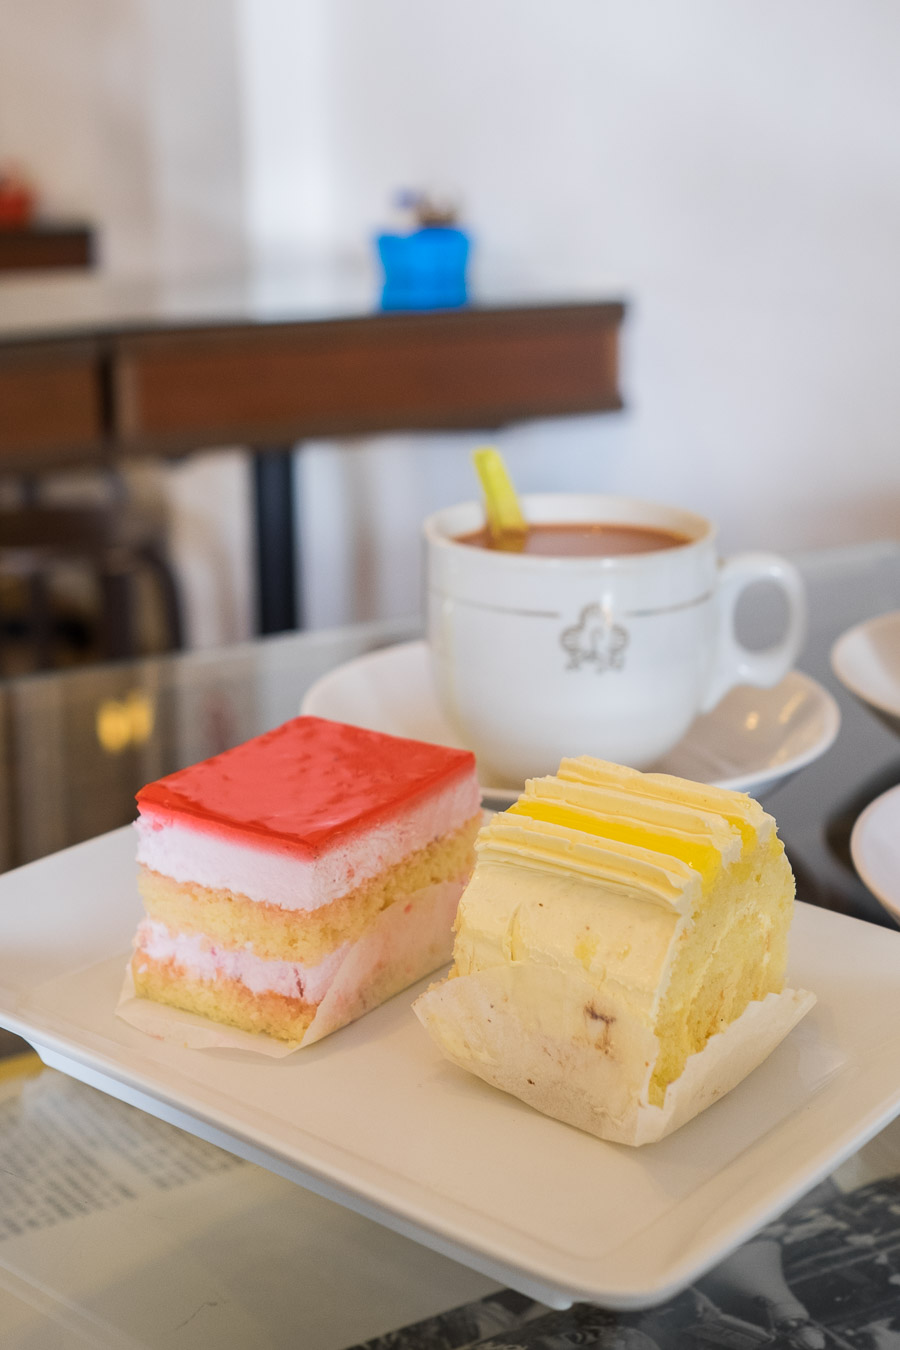 Strawberry mousse cake and good old lemon roll. The sponge cakes were soft and fluffy.